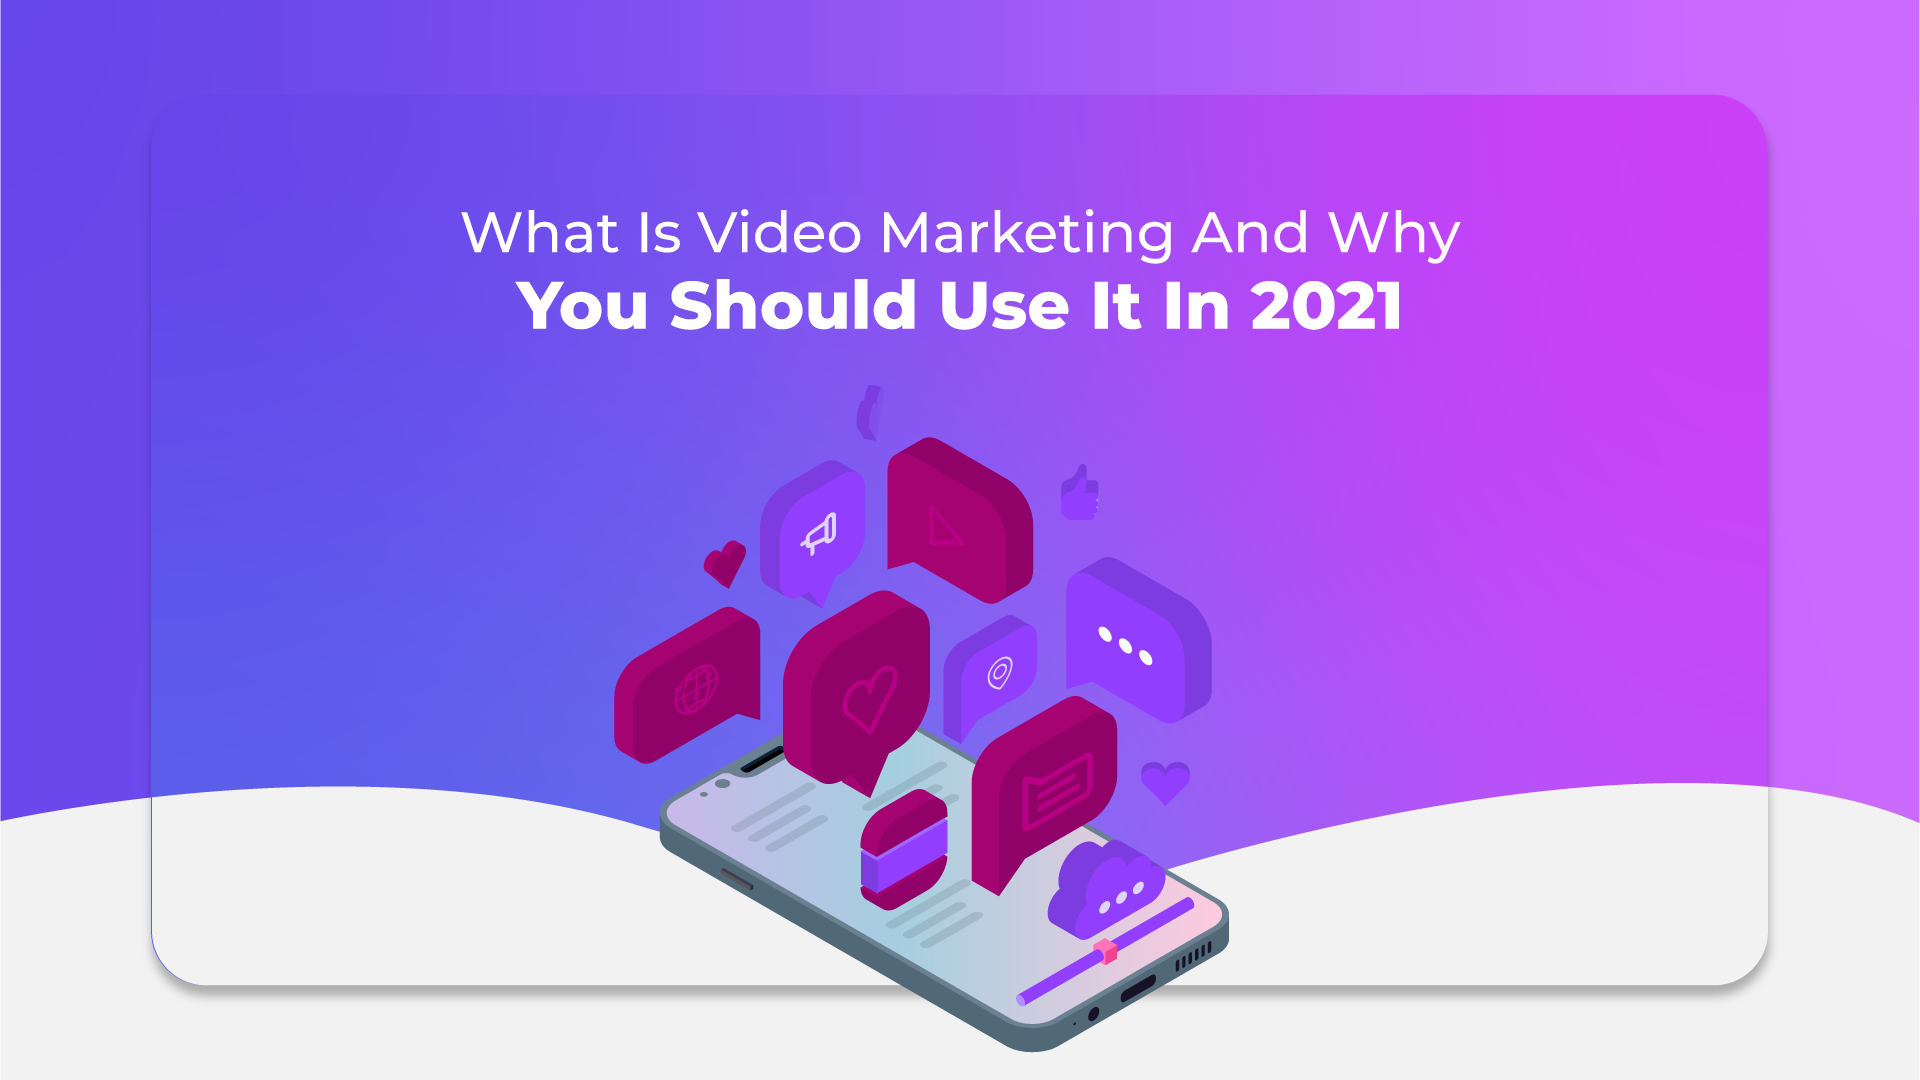 What Is Video Marketing And Why You Should Use It In 2021